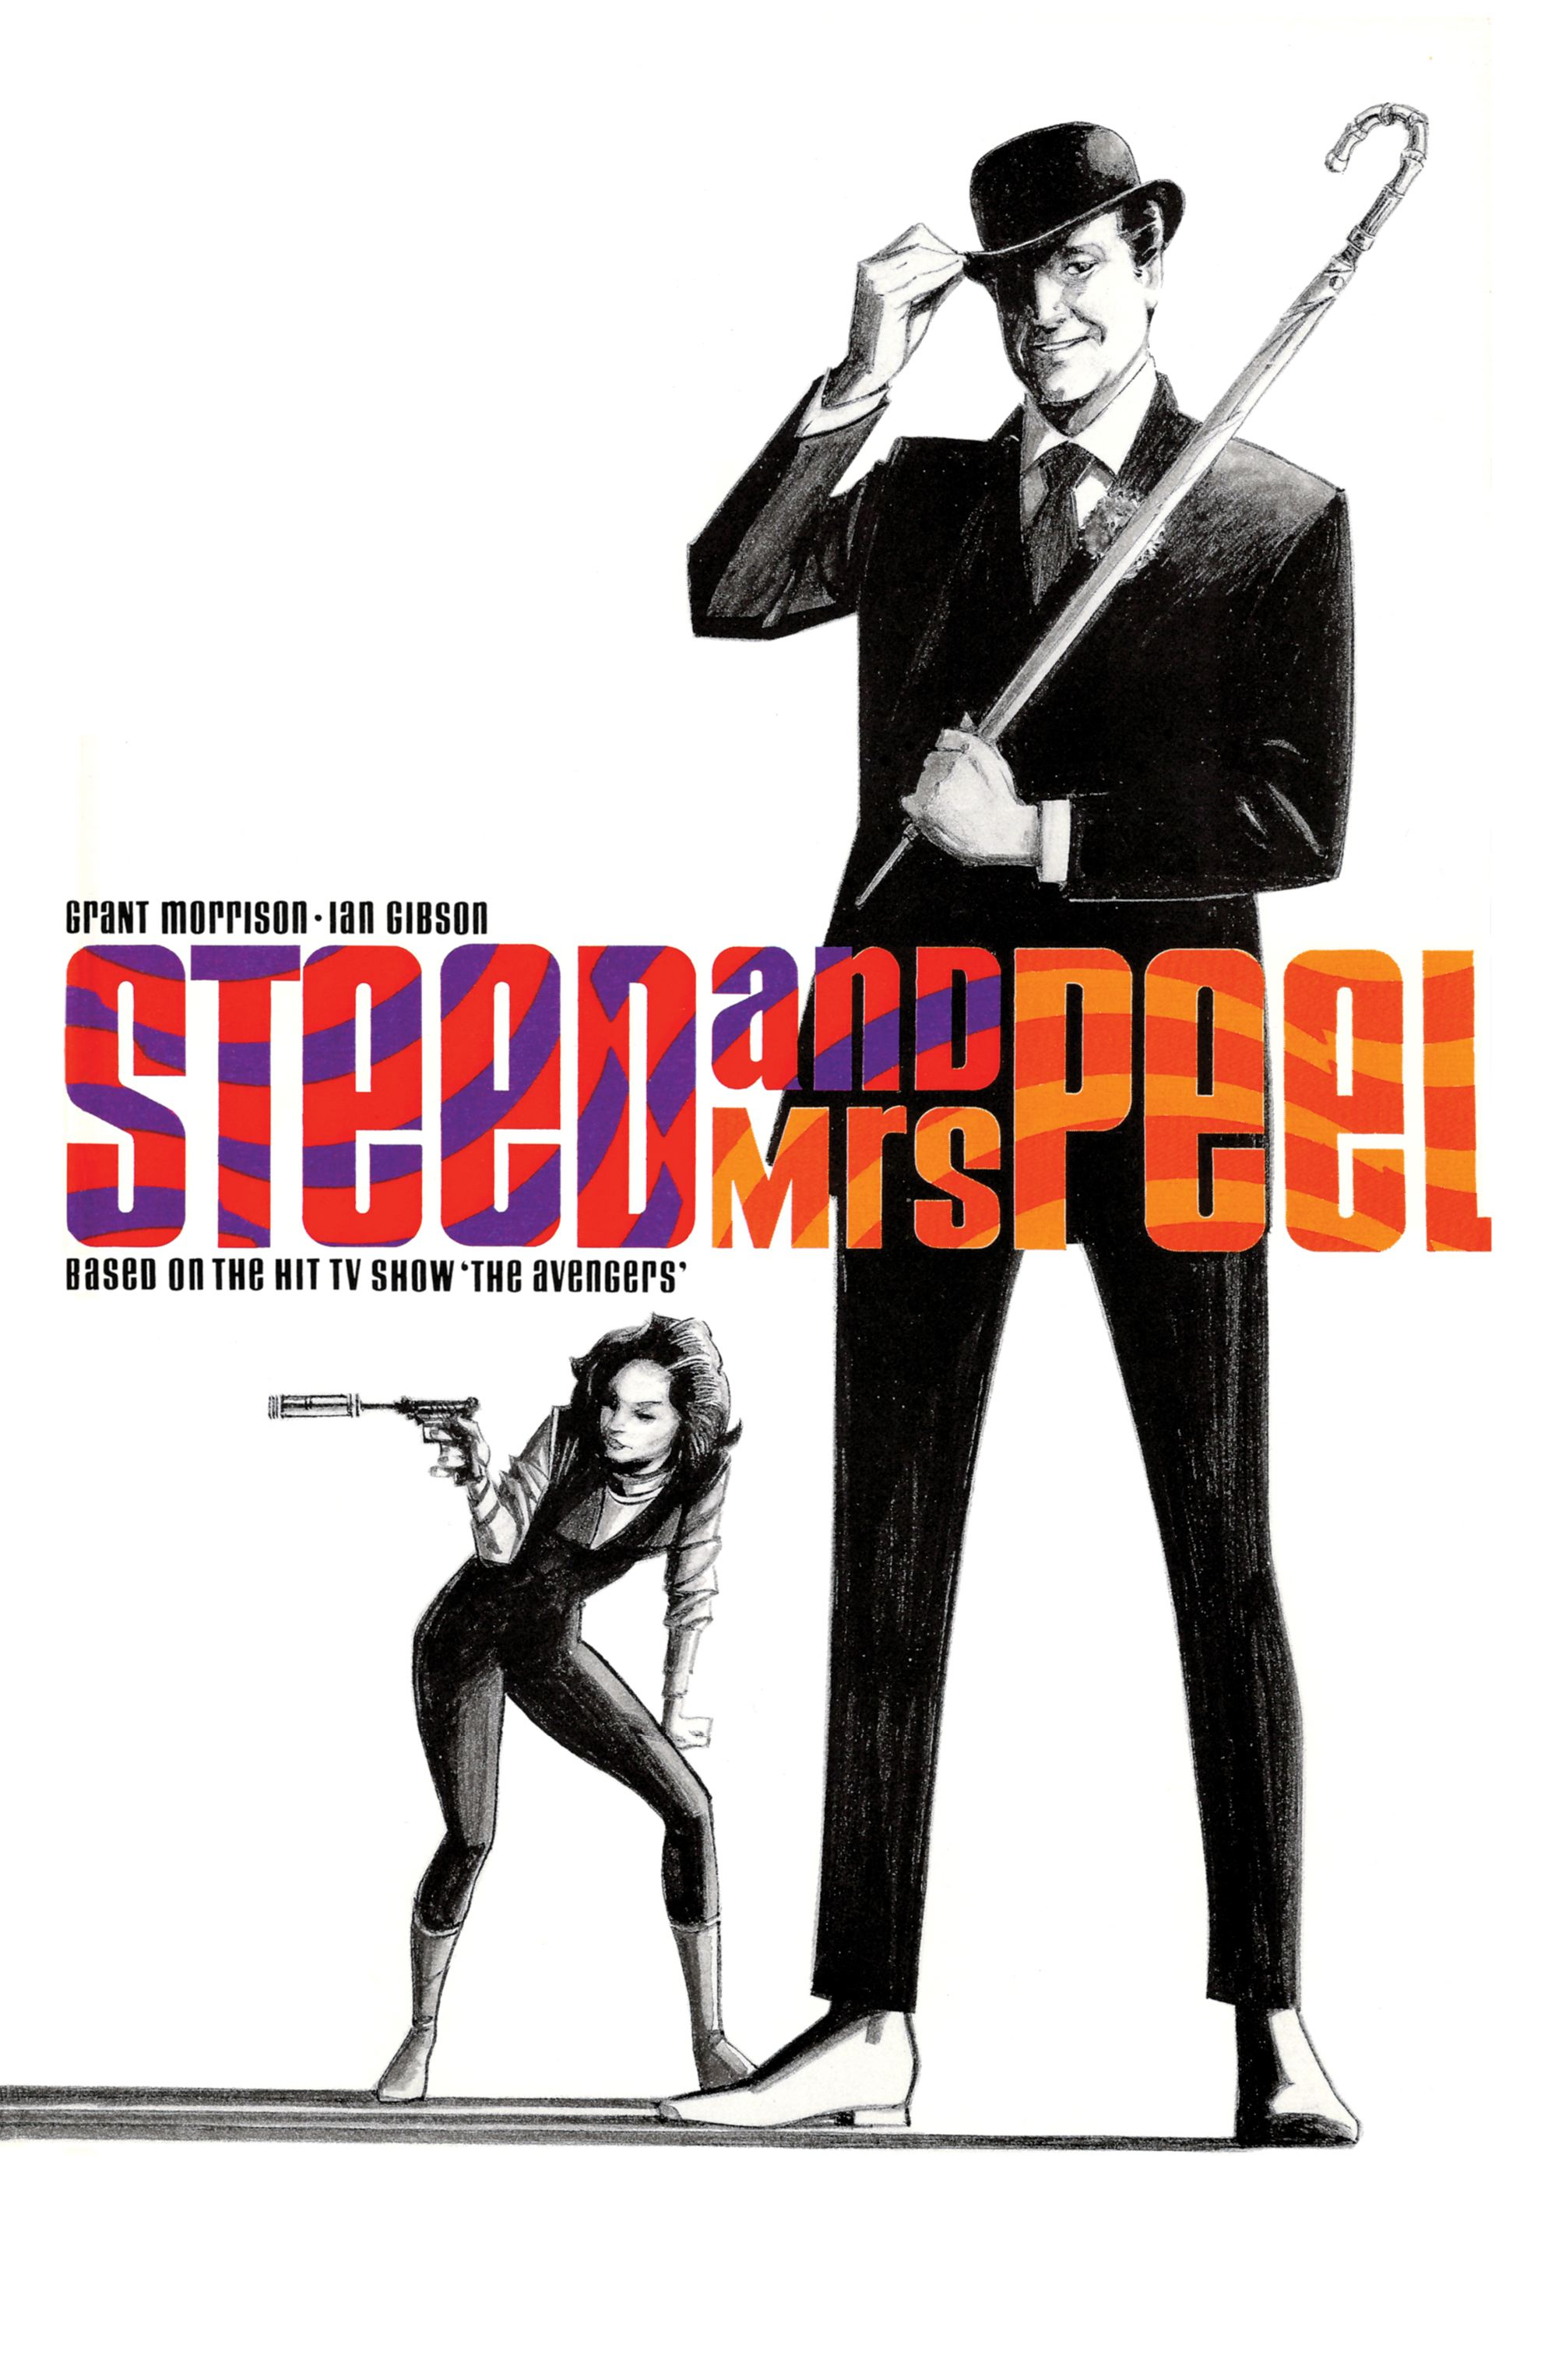 Steed-and-mrs-peel-the-golden-game-9781608862856_hr